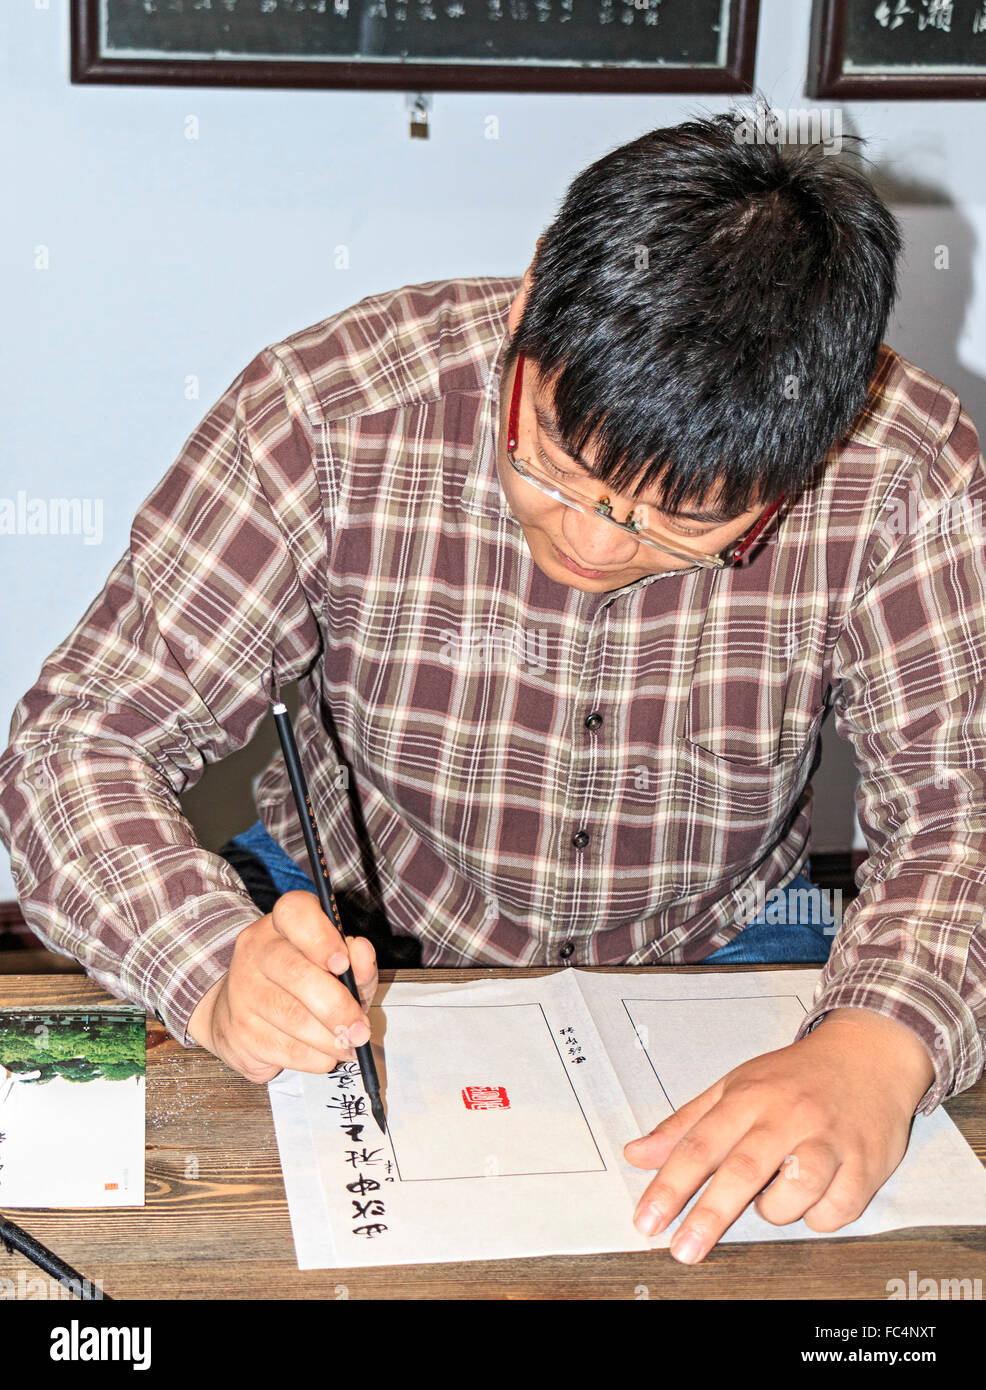 Wang Zhen, a master engraver, shows students how to carve a seal or chop at Xiling Seal Engraver's society in - Stock Image